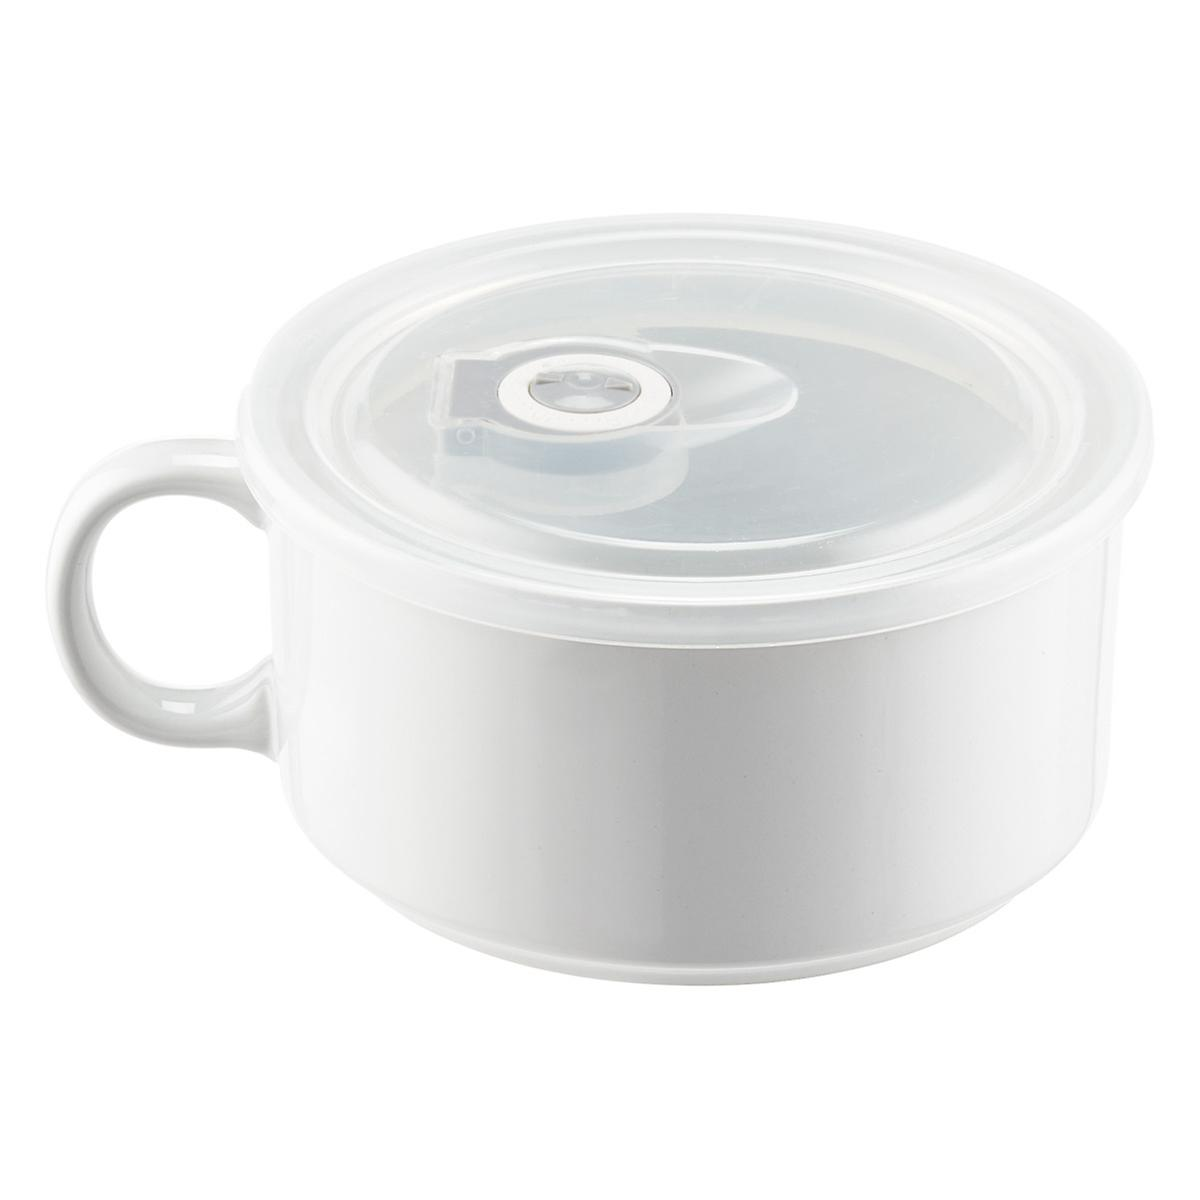 22 oz. Souper Mug with Lid